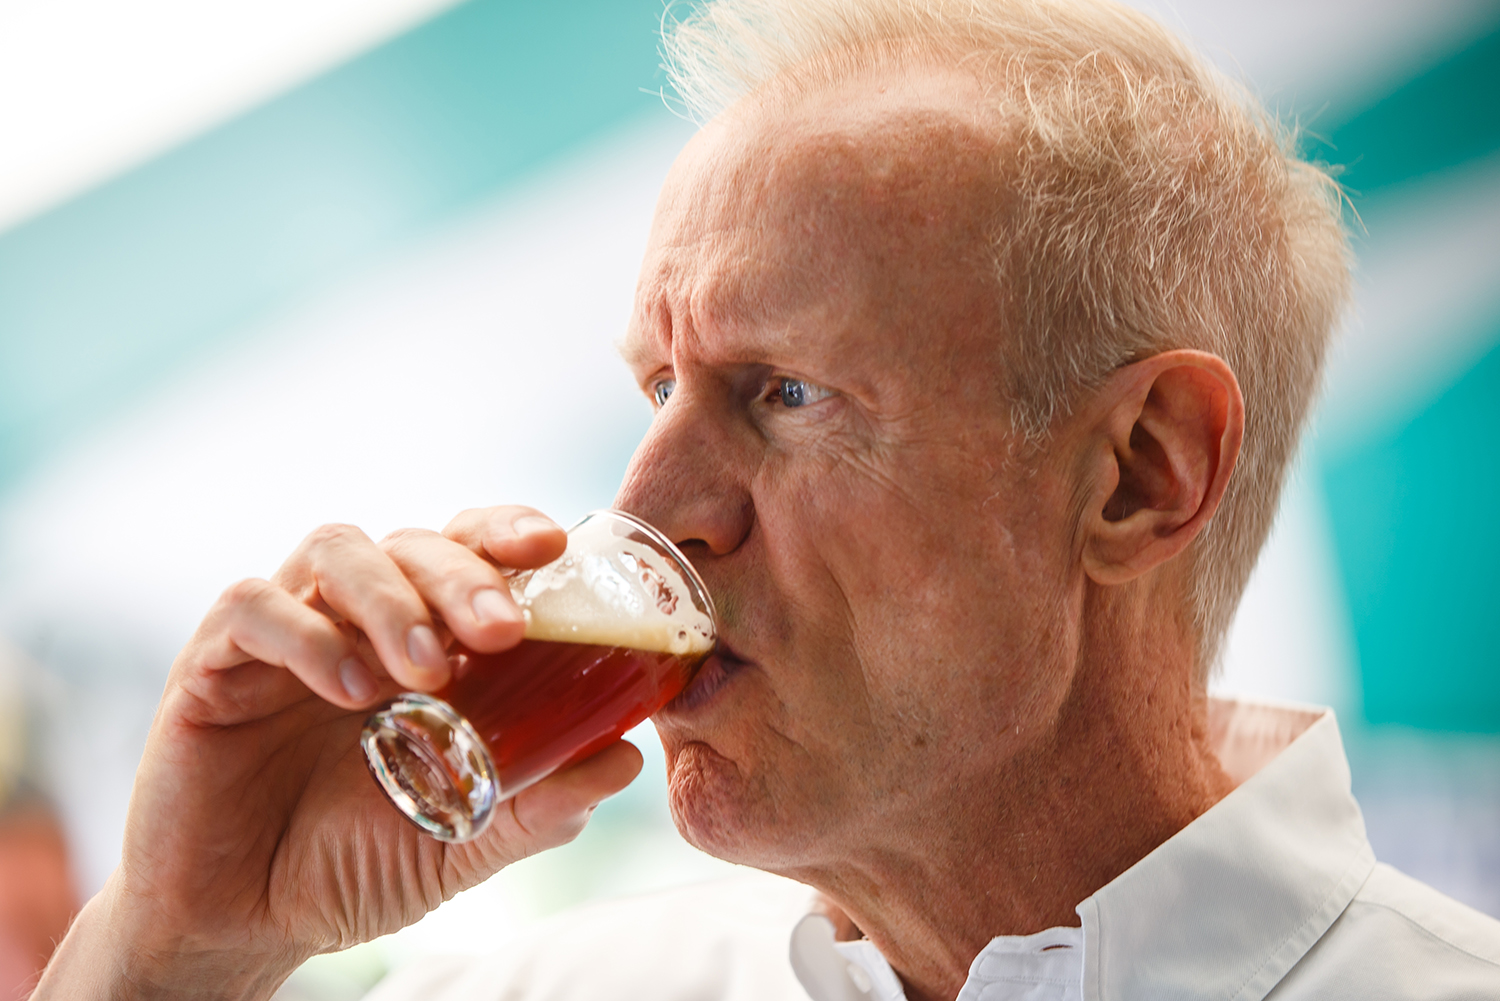 Gov. Bruce Rauner samples the Abe's Ale from Rolling Meadows Brewery during the Illinois Bicentennial Craft Beer Competition at the Illinois State Fair Aug. 13. Justin L. Fowler/The State Journal-Register